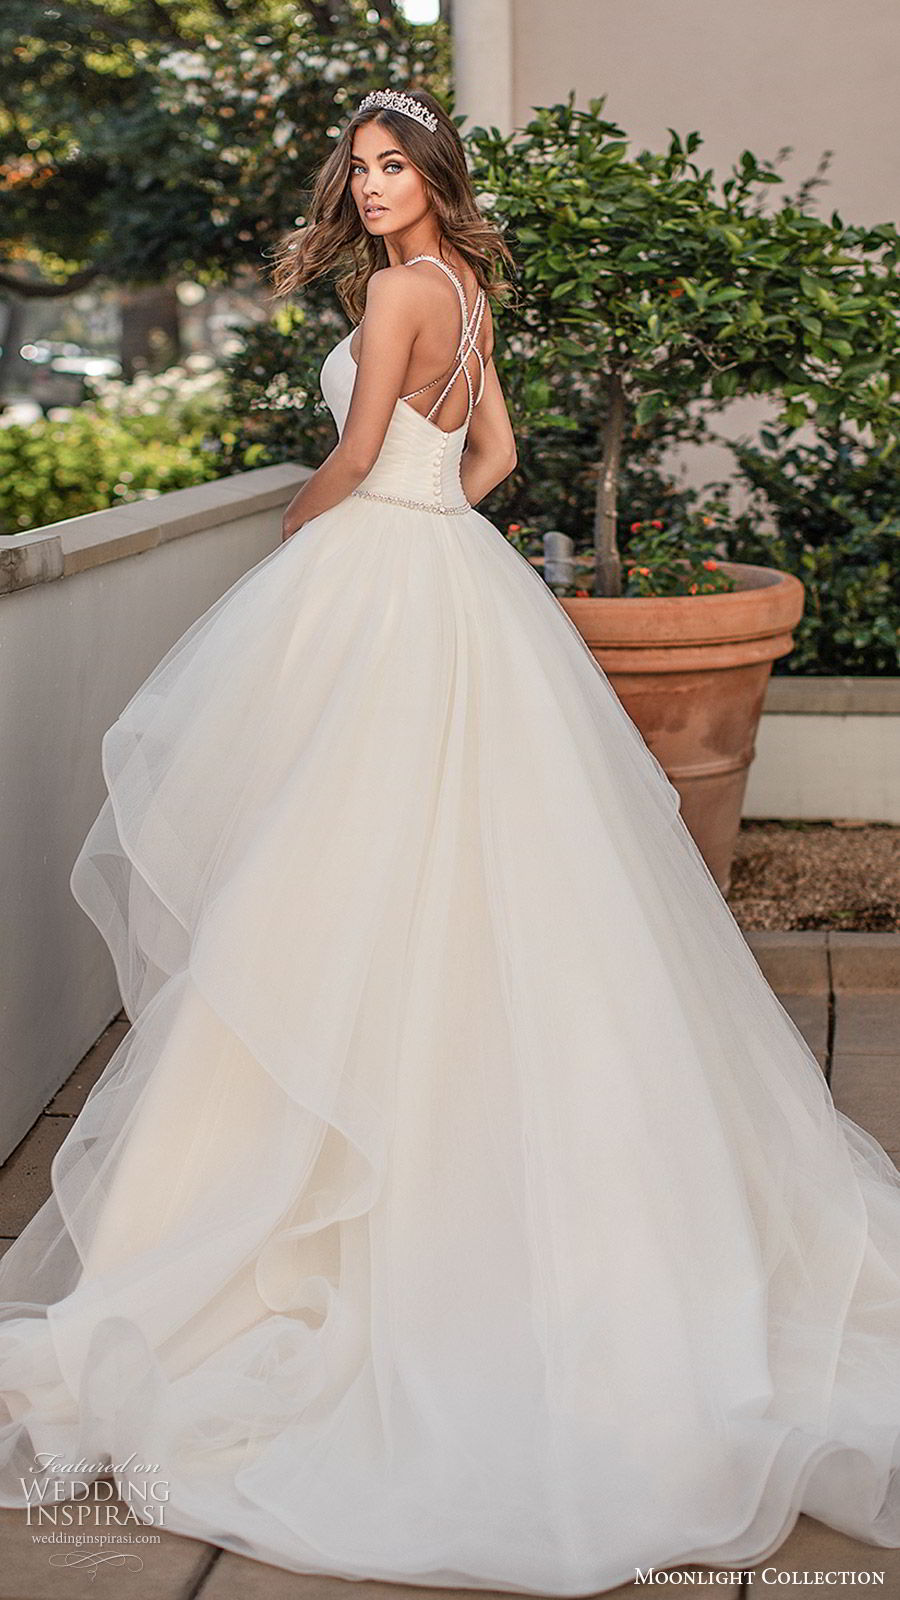 moonlight collection fall 2019 bridal sleeveless embellished straps v neck ruched bodice tiered skirt beaded waist a line ball gown wedding dress (5) clean romantic princess chapel train bv